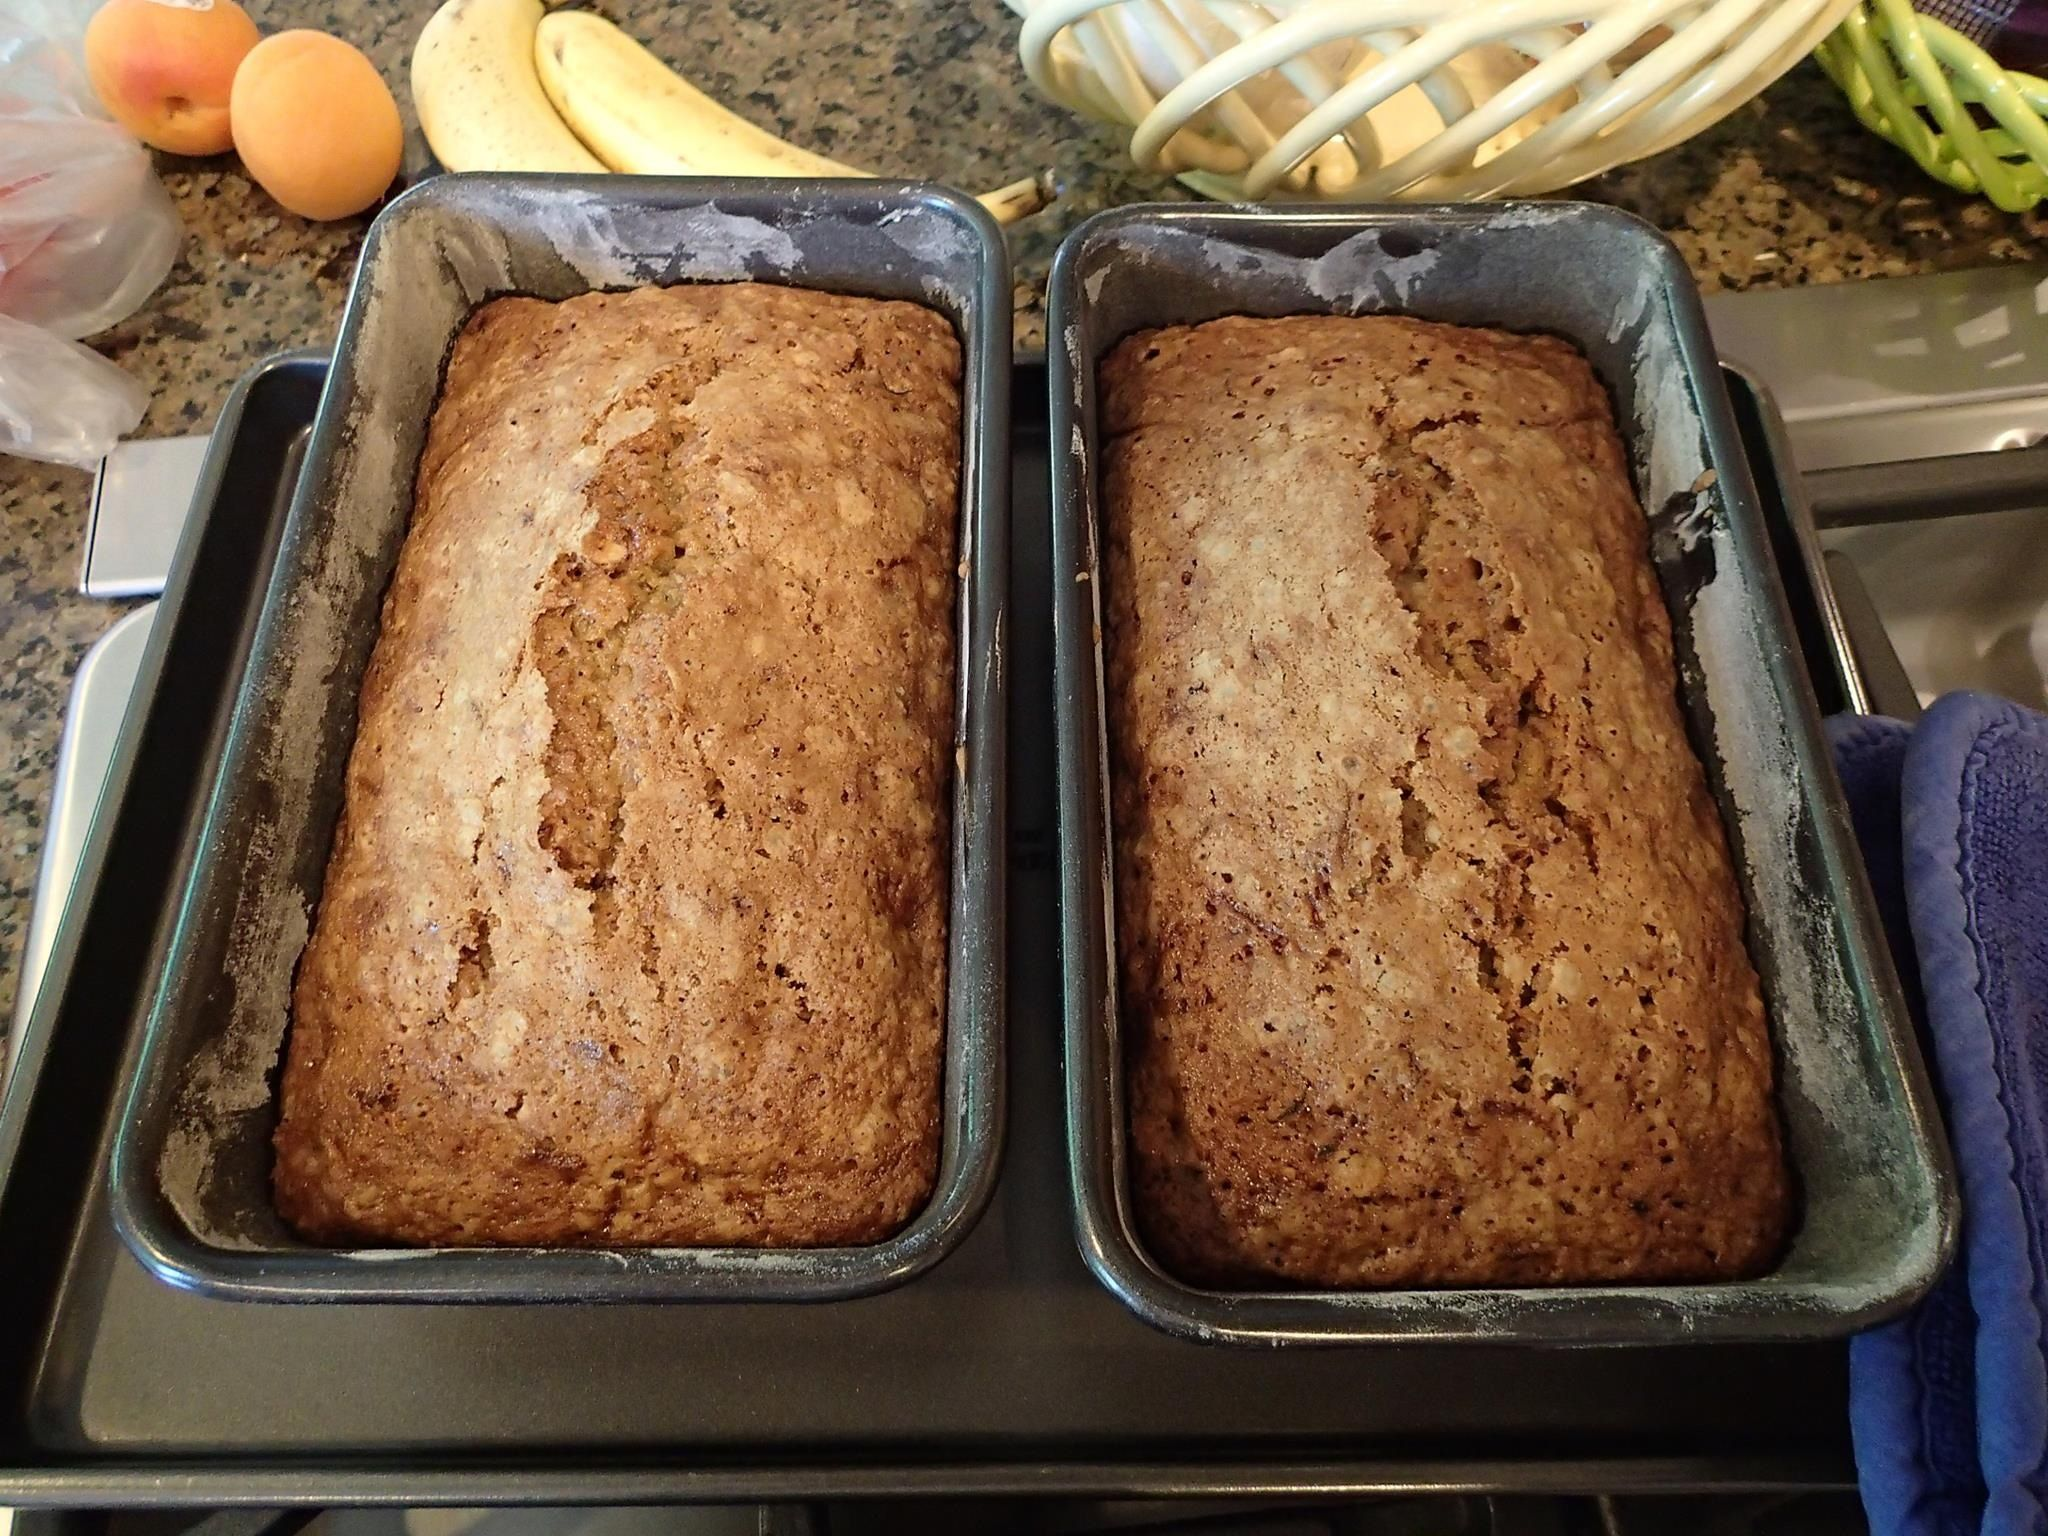 Best zucchini bread ive ever had i modified paula deens recipe at best zucchini bread ive ever had i modified paula deens recipe at httpfoodnetworkrecipespaula deenzucchini bread recipeindexml i forumfinder Choice Image